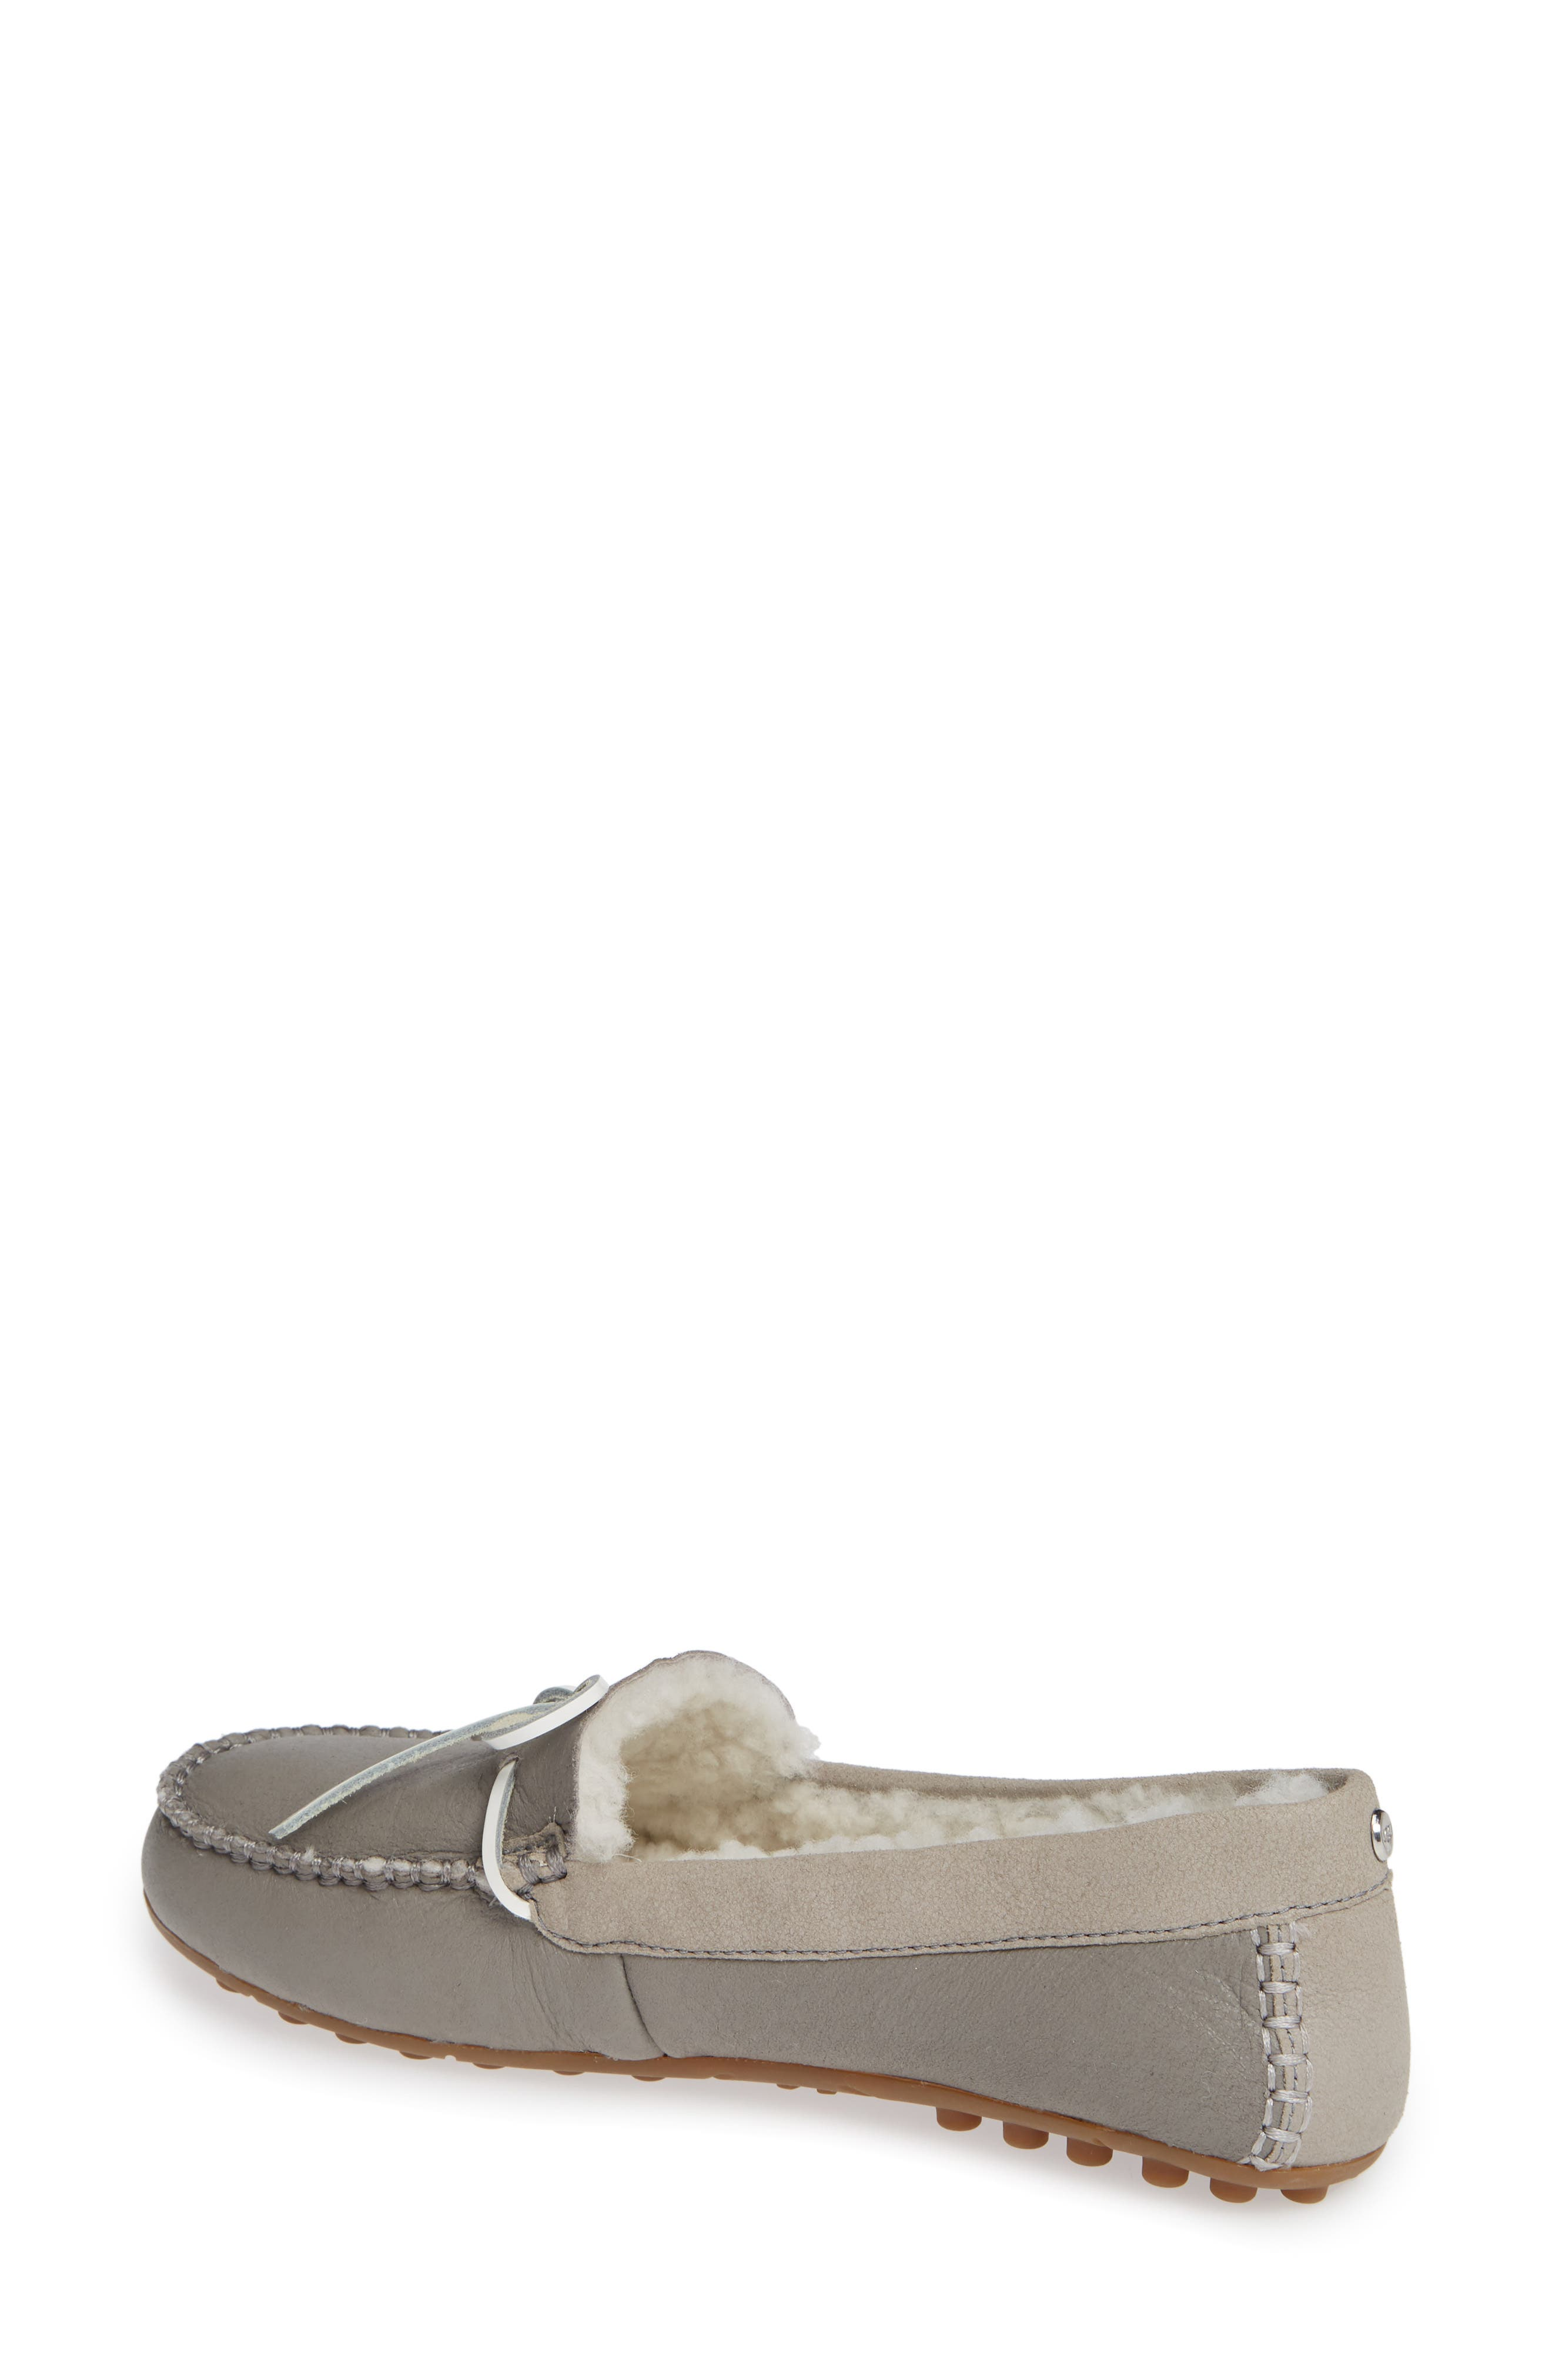 Deluxe Loafer,                             Alternate thumbnail 2, color,                             SEAL LEATHER